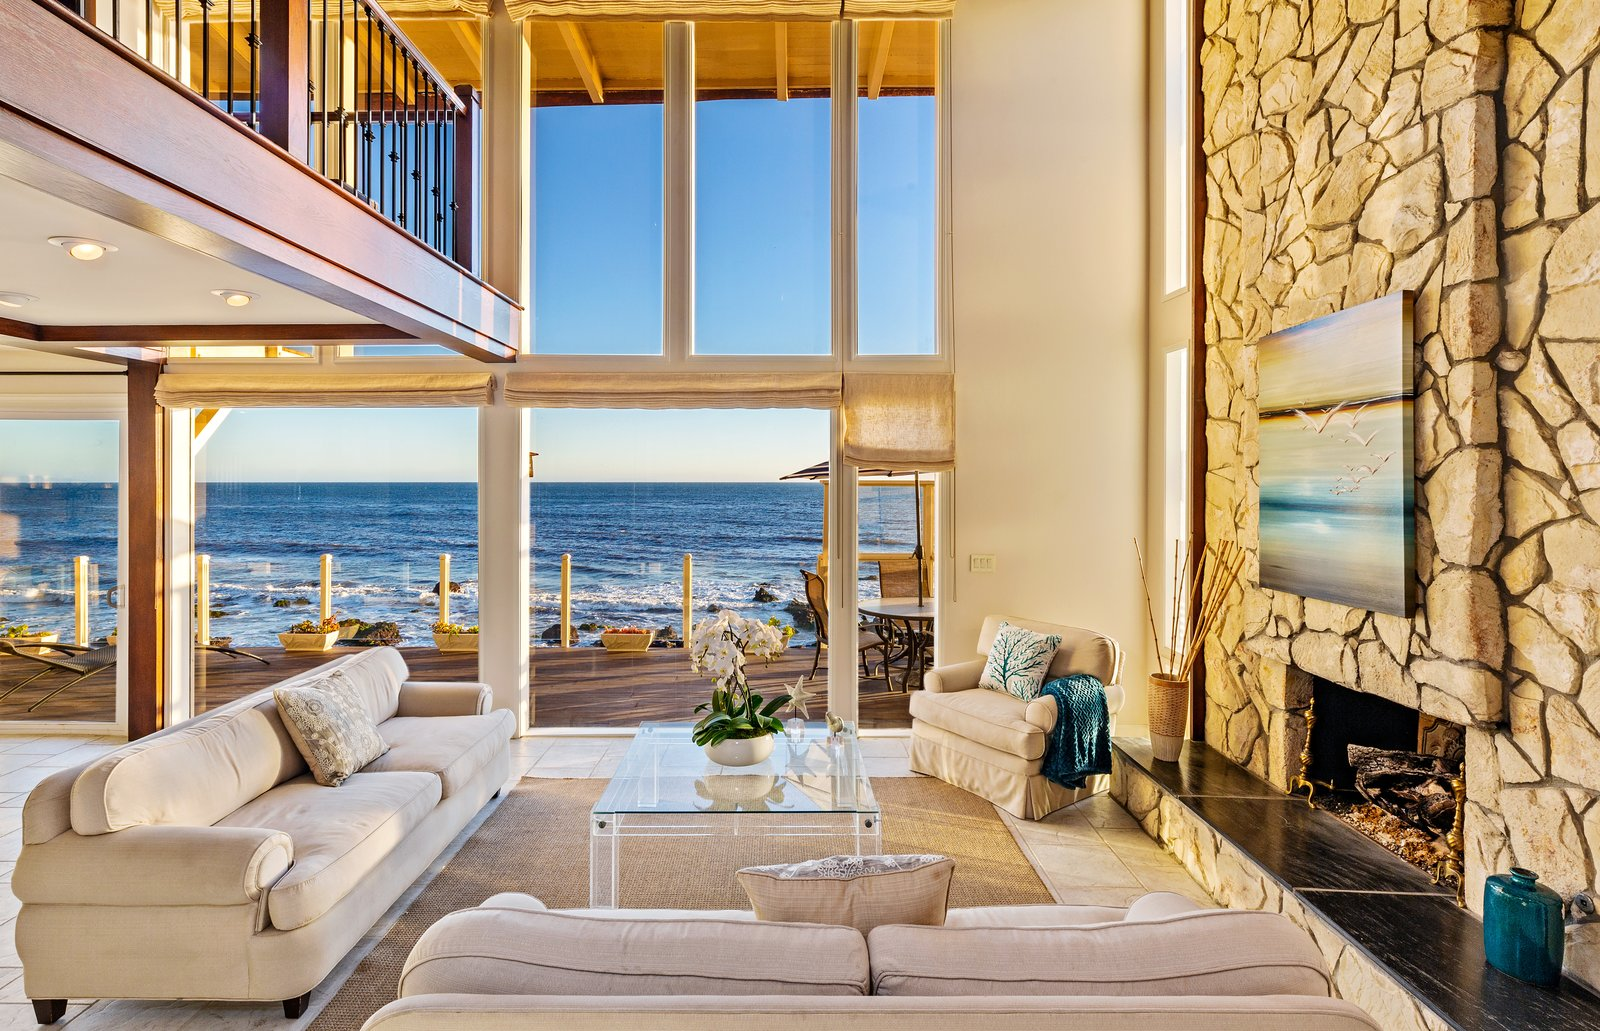 Malibu beach home living room